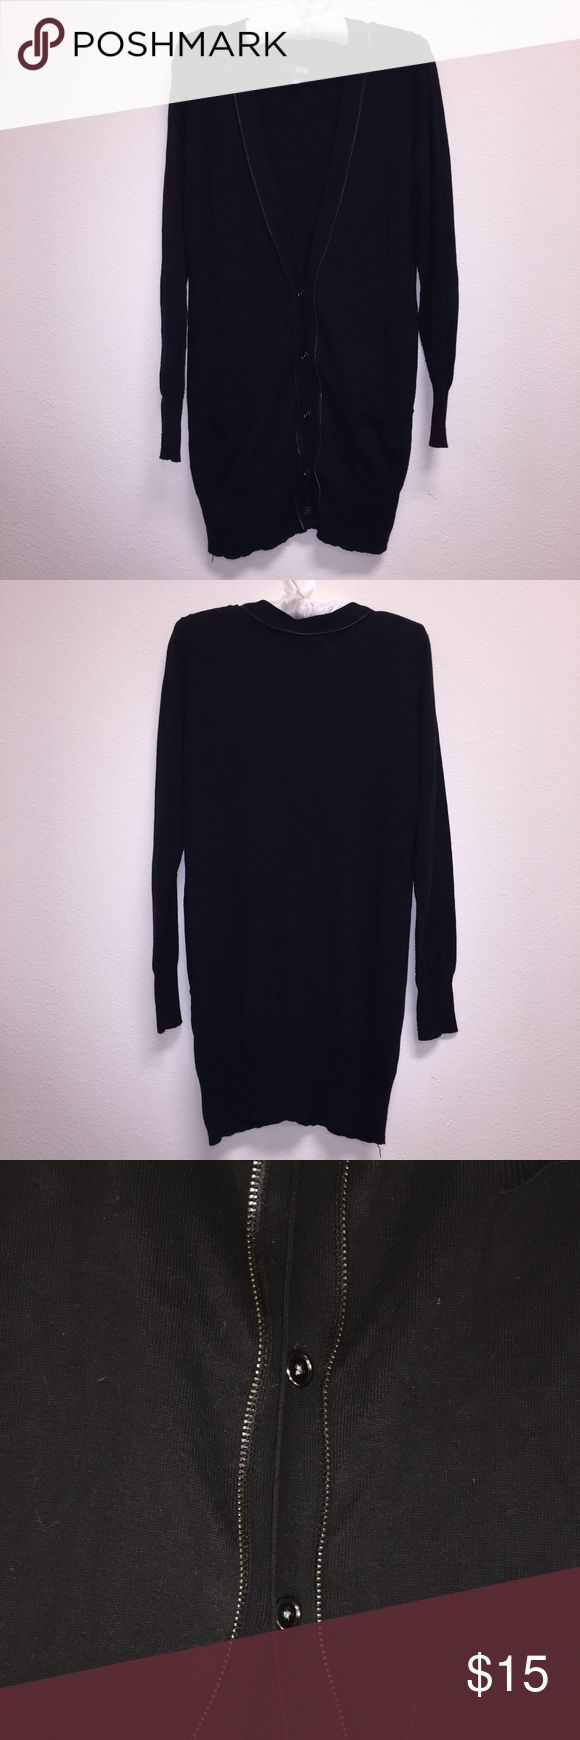 """A.N.A Black Cardigan Size M, item in good condition with no major flaws to note. Color is black. Armpit: 20"""". Length: 31"""". Feel free to ask any questions, no trades or model photos sorry. Offers thru offer button only. Items ship same day M-F if purchased before 2pm PST! a.n.a Sweaters Cardigans"""